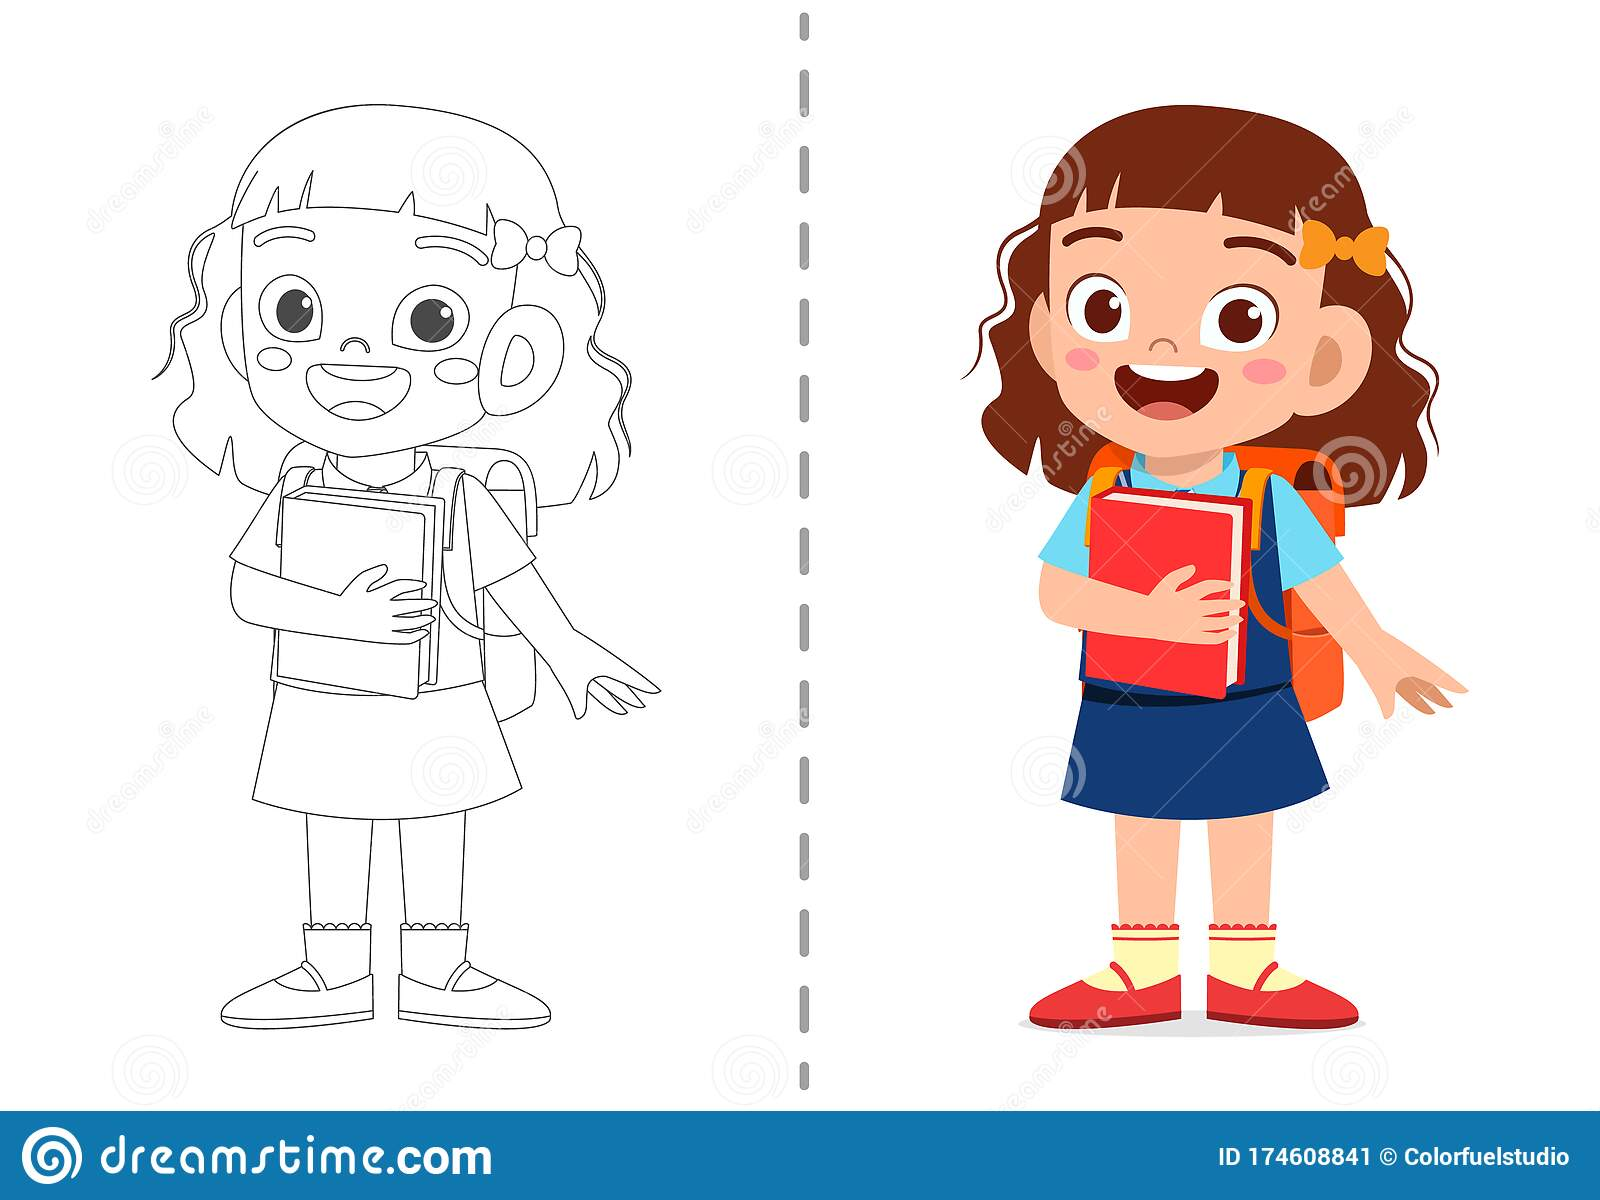 - Cute Cartoon Coloring Book Template For Kids Stock Vector